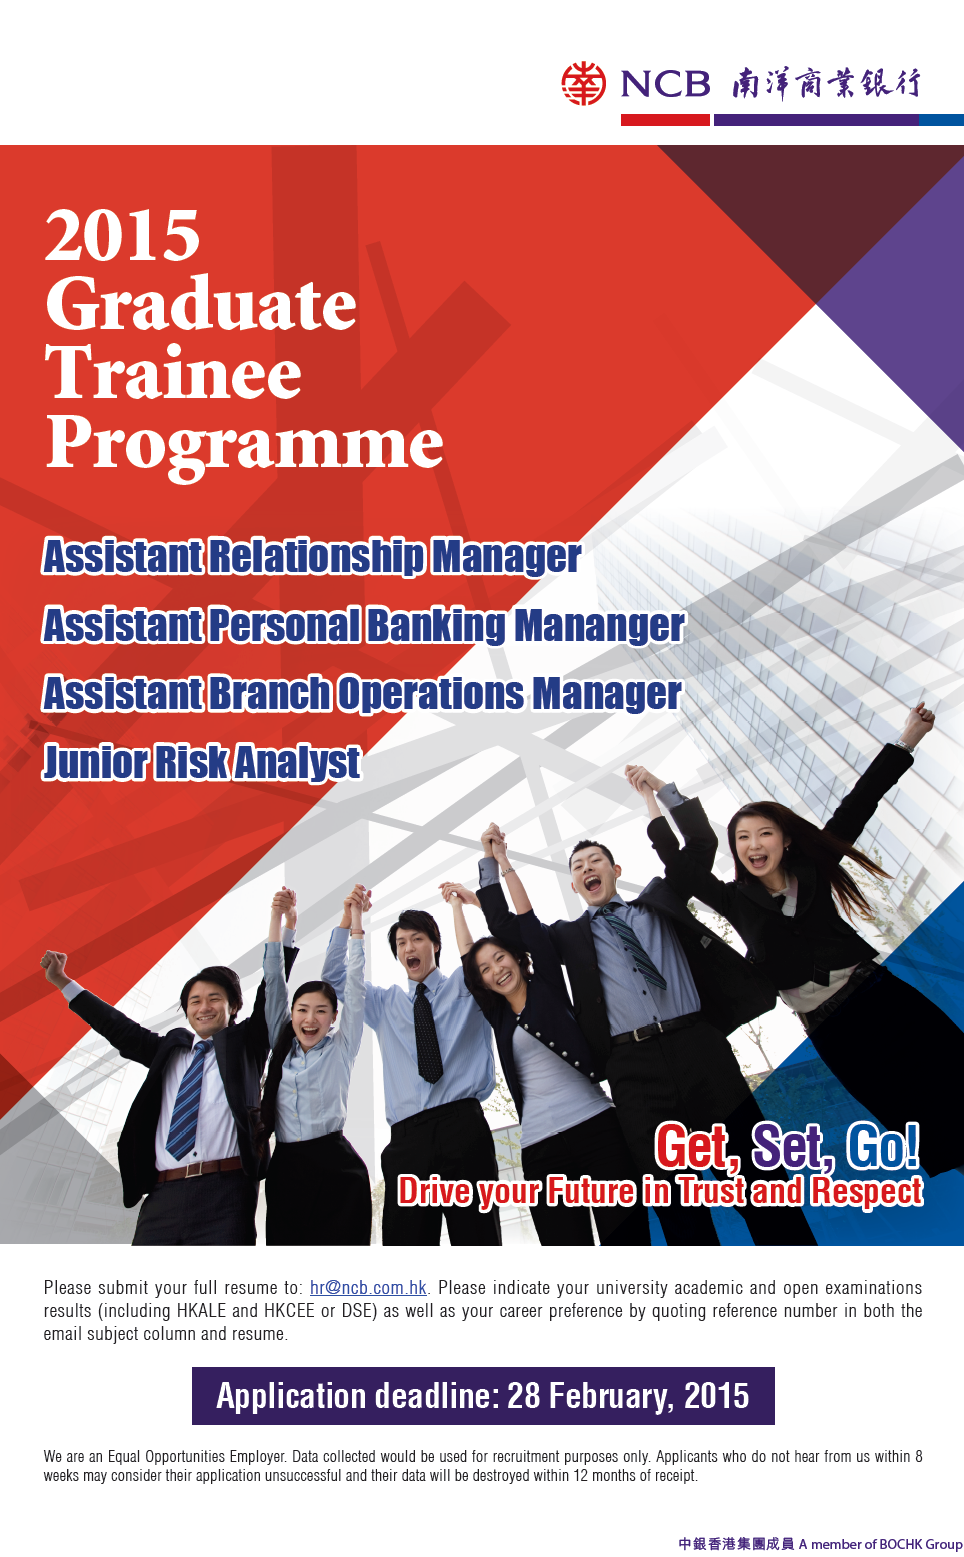 2015 Graduate Trainee Programme from Nanyang Commercial Bank